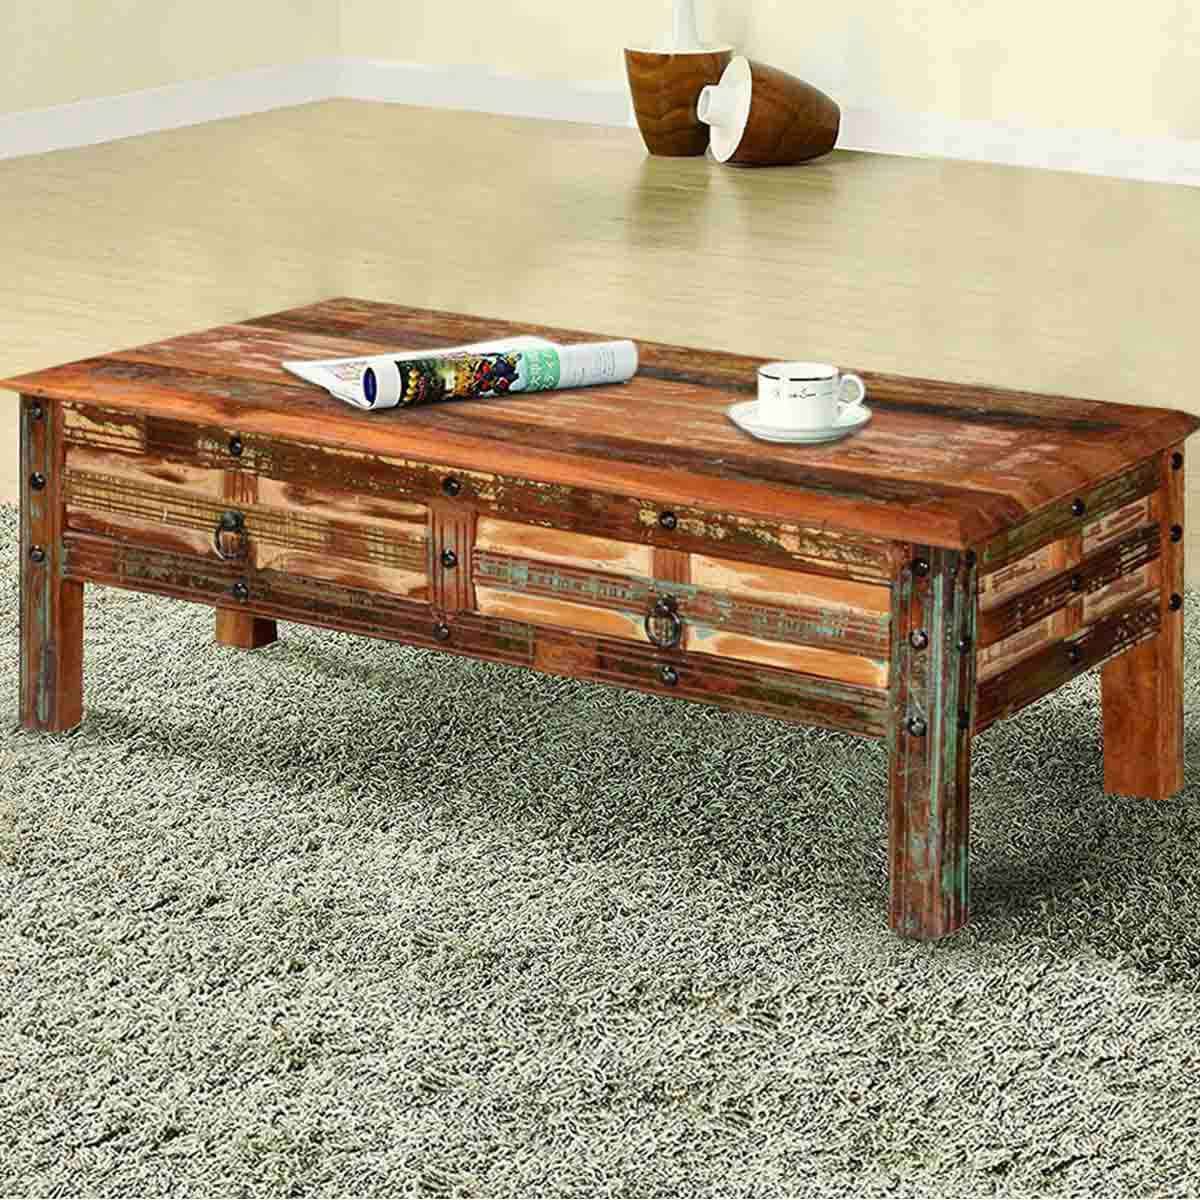 Pioneer rustic reclaimed wood 45 coffee table w drawers Coffee tables rustic